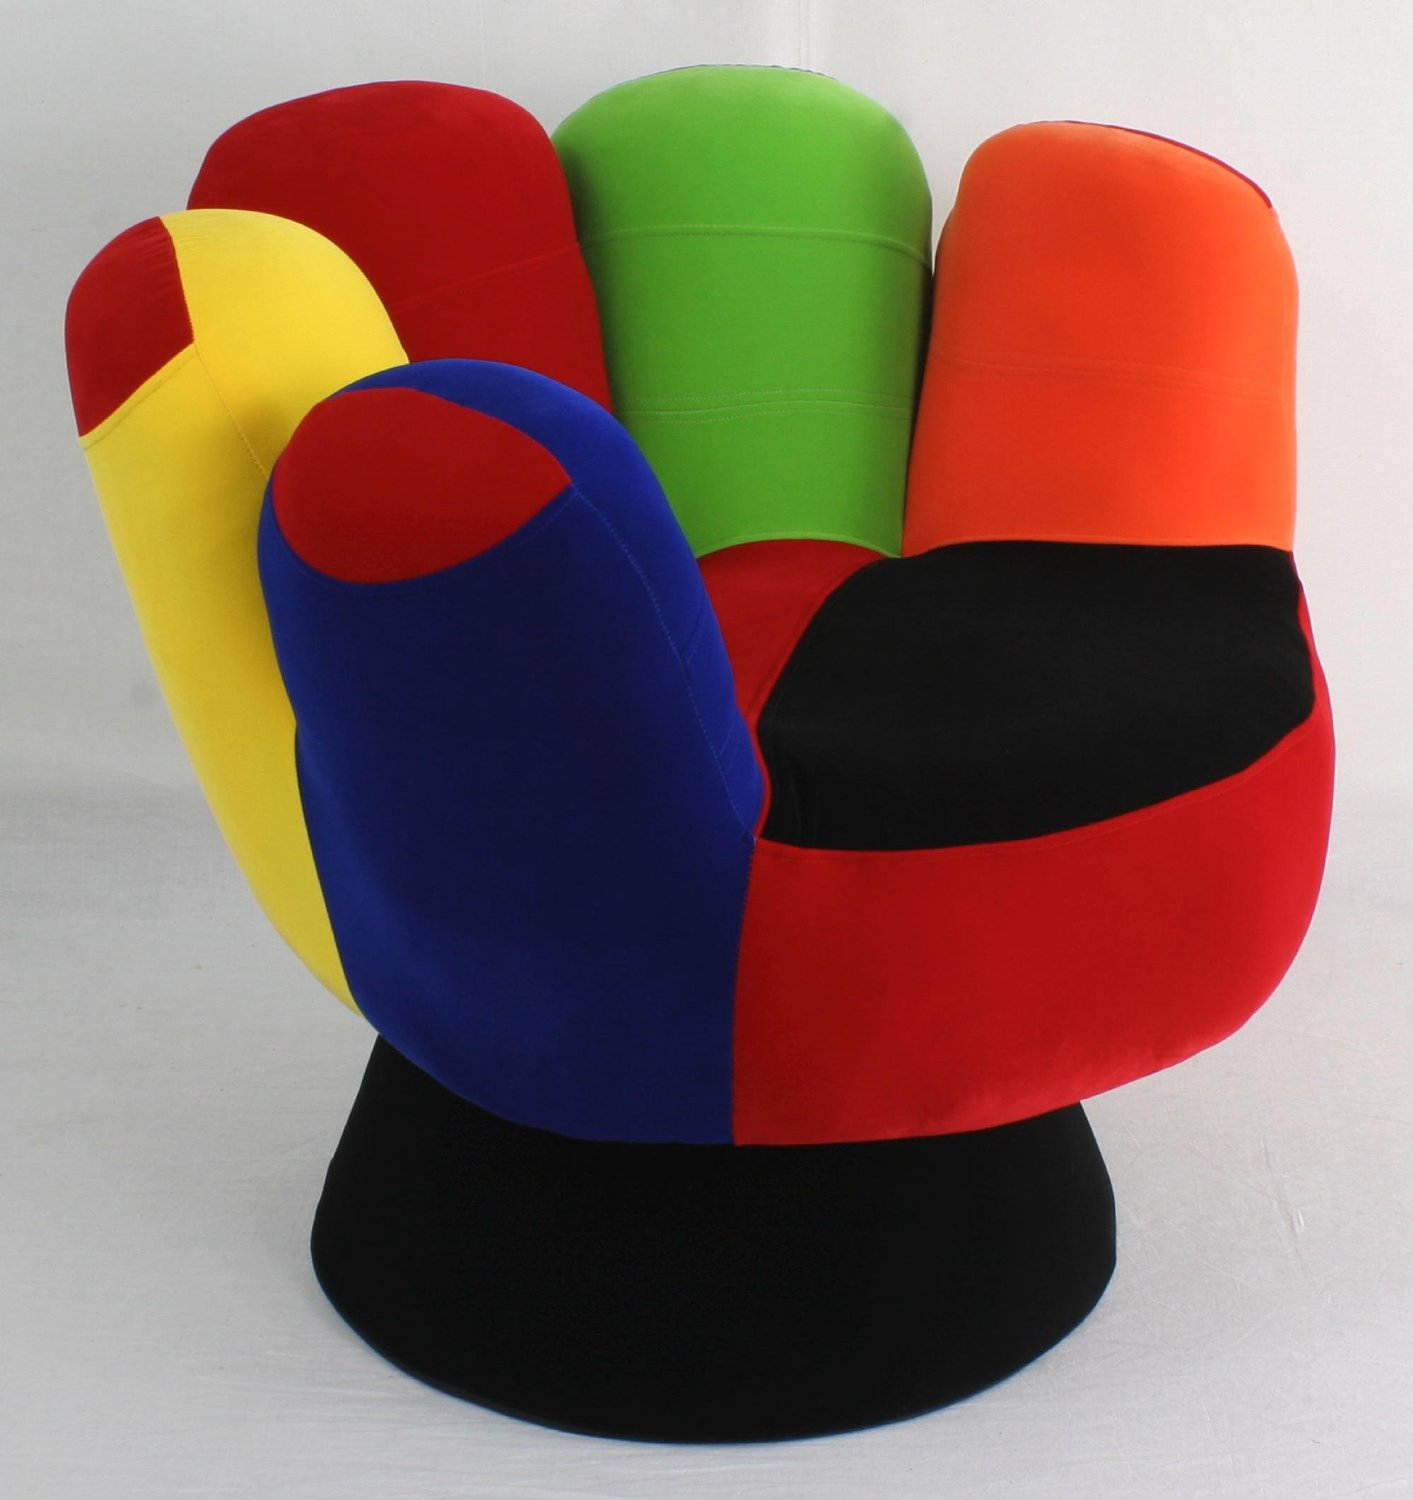 Funky mitt hand chair something different funk this house for Funky furniture